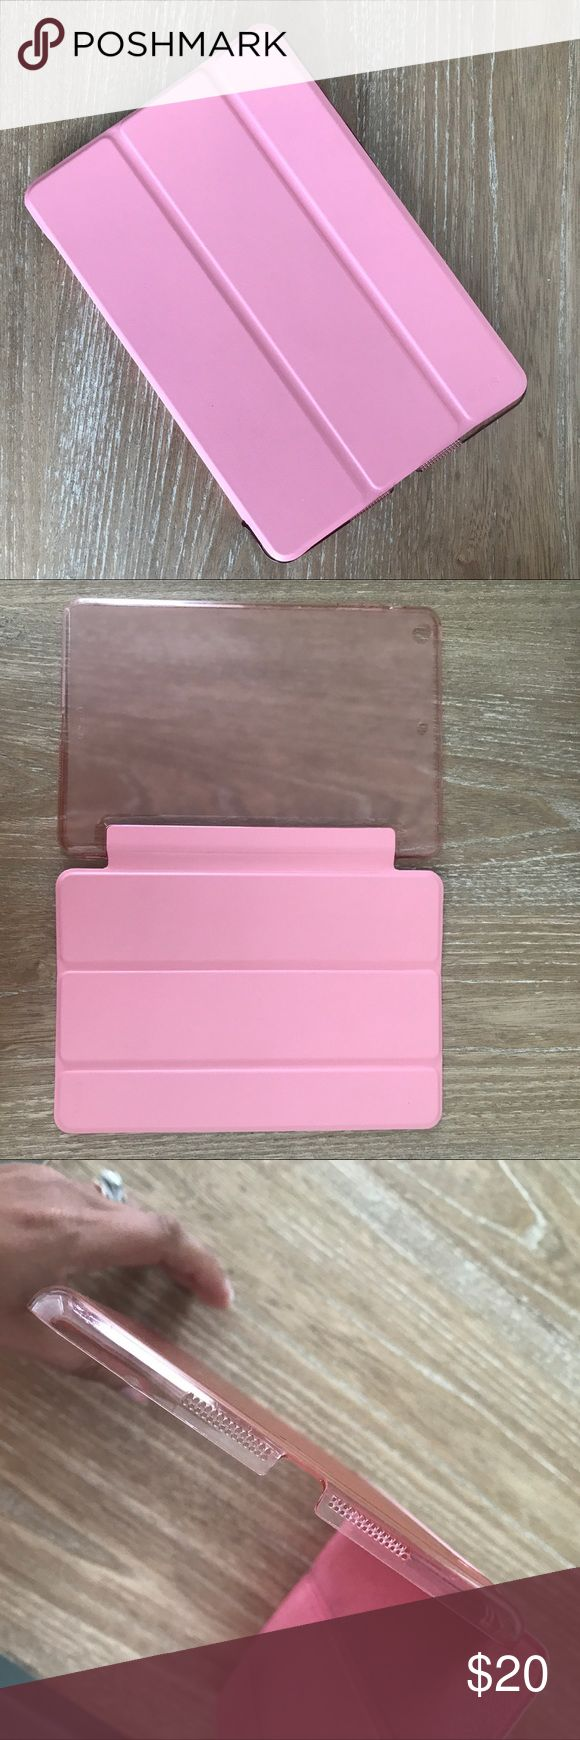 IPAD MINI SMART COVER CASE WITH BACK HARD CASE 💗Condition: Excellent used condition. All flaws noted on pictures. No cracks. Smart cover turns on and off your Ipad Mini. Fits to Apple Ipad Mini. Color: Bubble gum pink.  💗Smoke free home/Pet hair free 💗No trades, No returns. No modeling  💗 If you want to resell the item, yes, you are allowed to use my photos. 💗Shipping next day. Beautiful package! 💗ALL ITEMS ARE OWNED BY ME. NOT FROM THRIFT STORES 💗All transactions video recorded to…